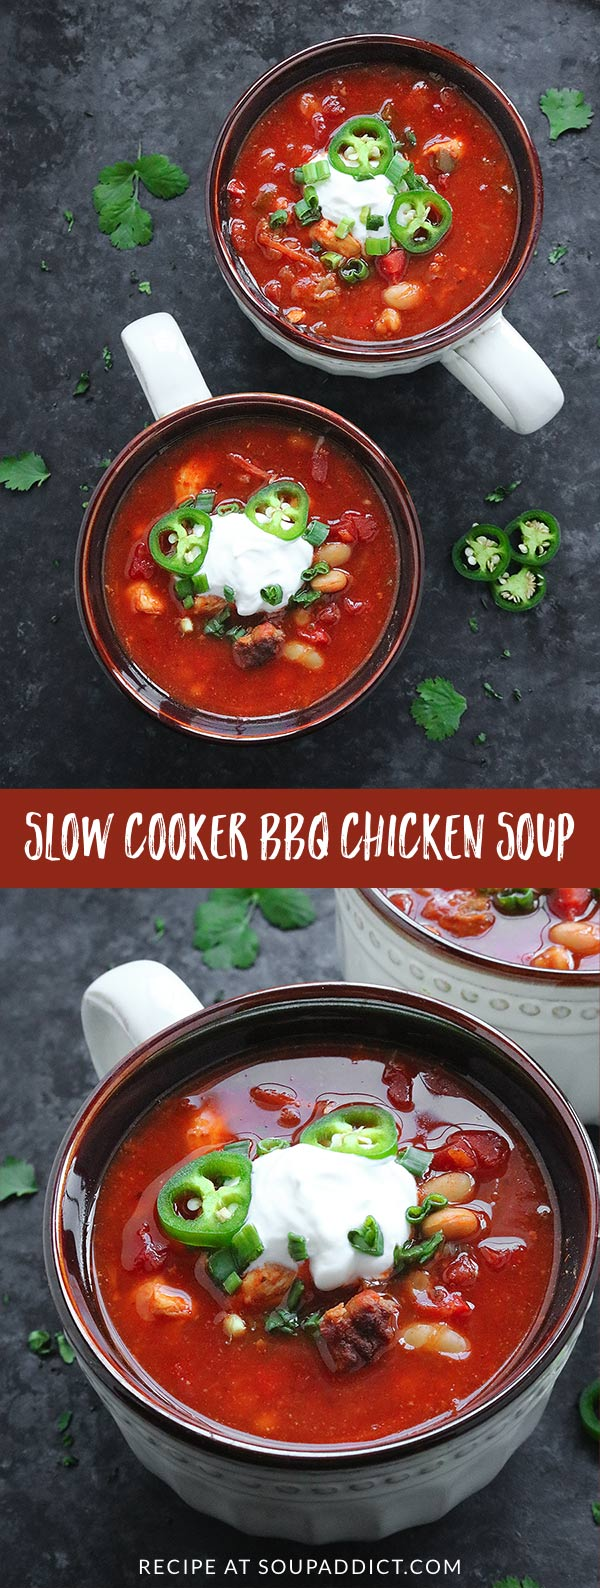 Game Day Slow Cooker BBQ Chicken Soup - A hearty barbecue chicken soup that's make-ahead easy in the slow cooker. Perfect for a game day meal, or as a side to appetizers and finger foods. Recipe at SoupAddict.com | slow cooker soup | slow cooker soup recipes | slow cooker chicken soup | crock pot soup | bbq chicken | super bowl | super bowl food | game day food